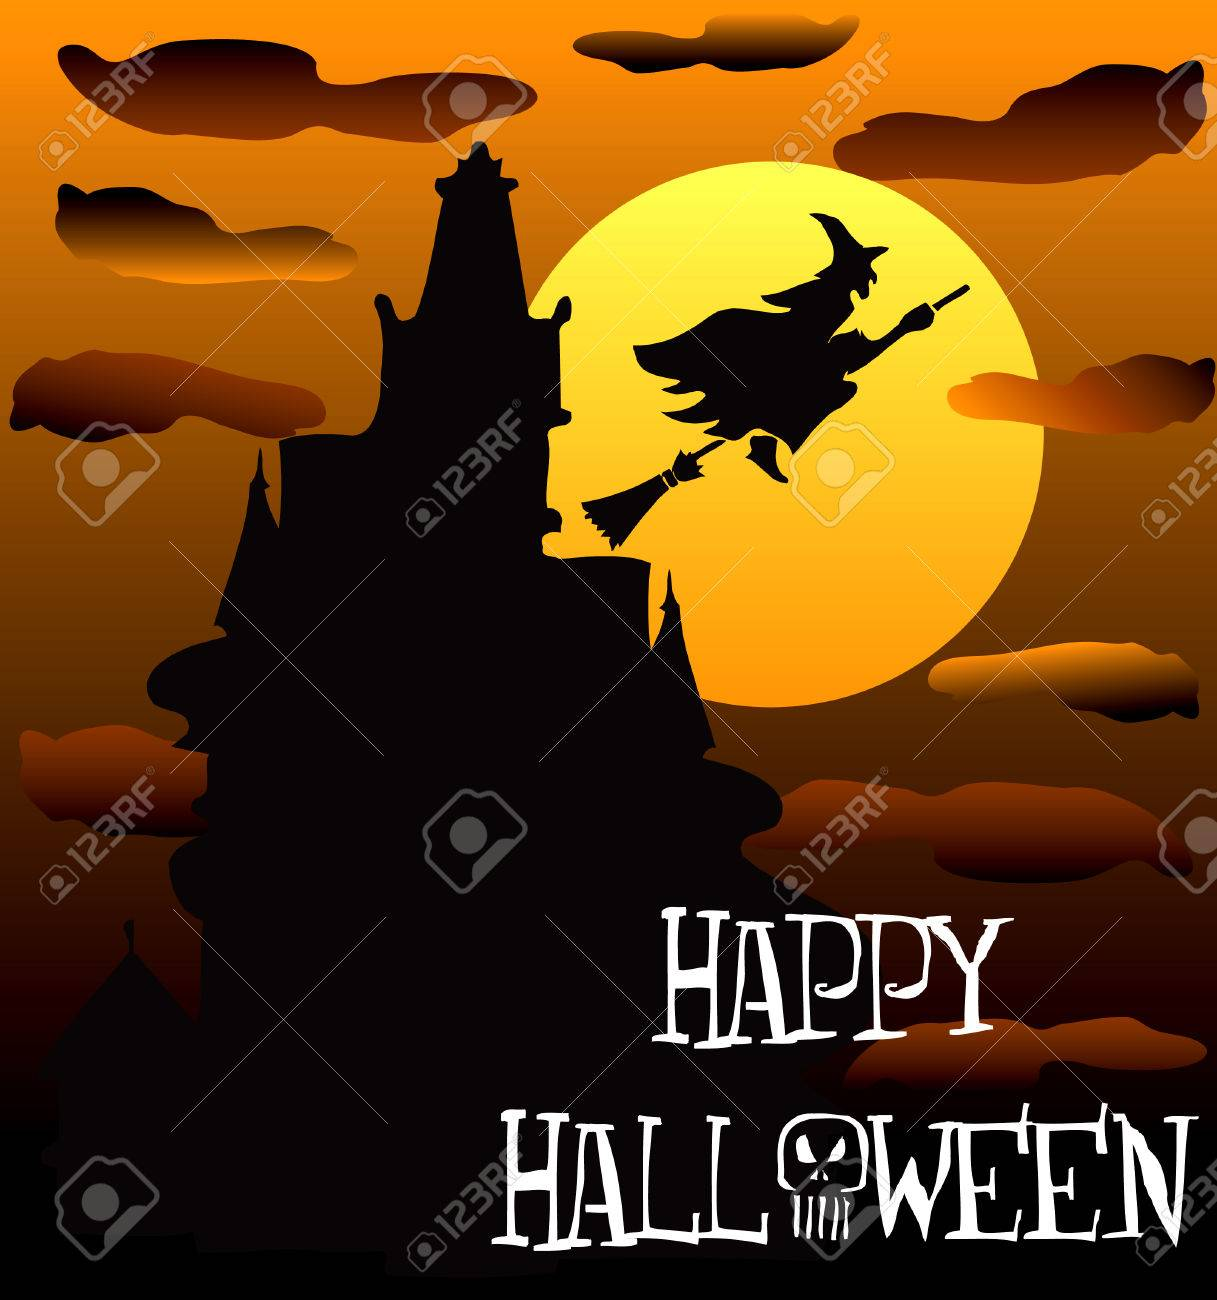 Illustration Of A Happy Halloween Haunted House 2 Royalty Free Cliparts Vectors And Stock Illustration Image 7879166